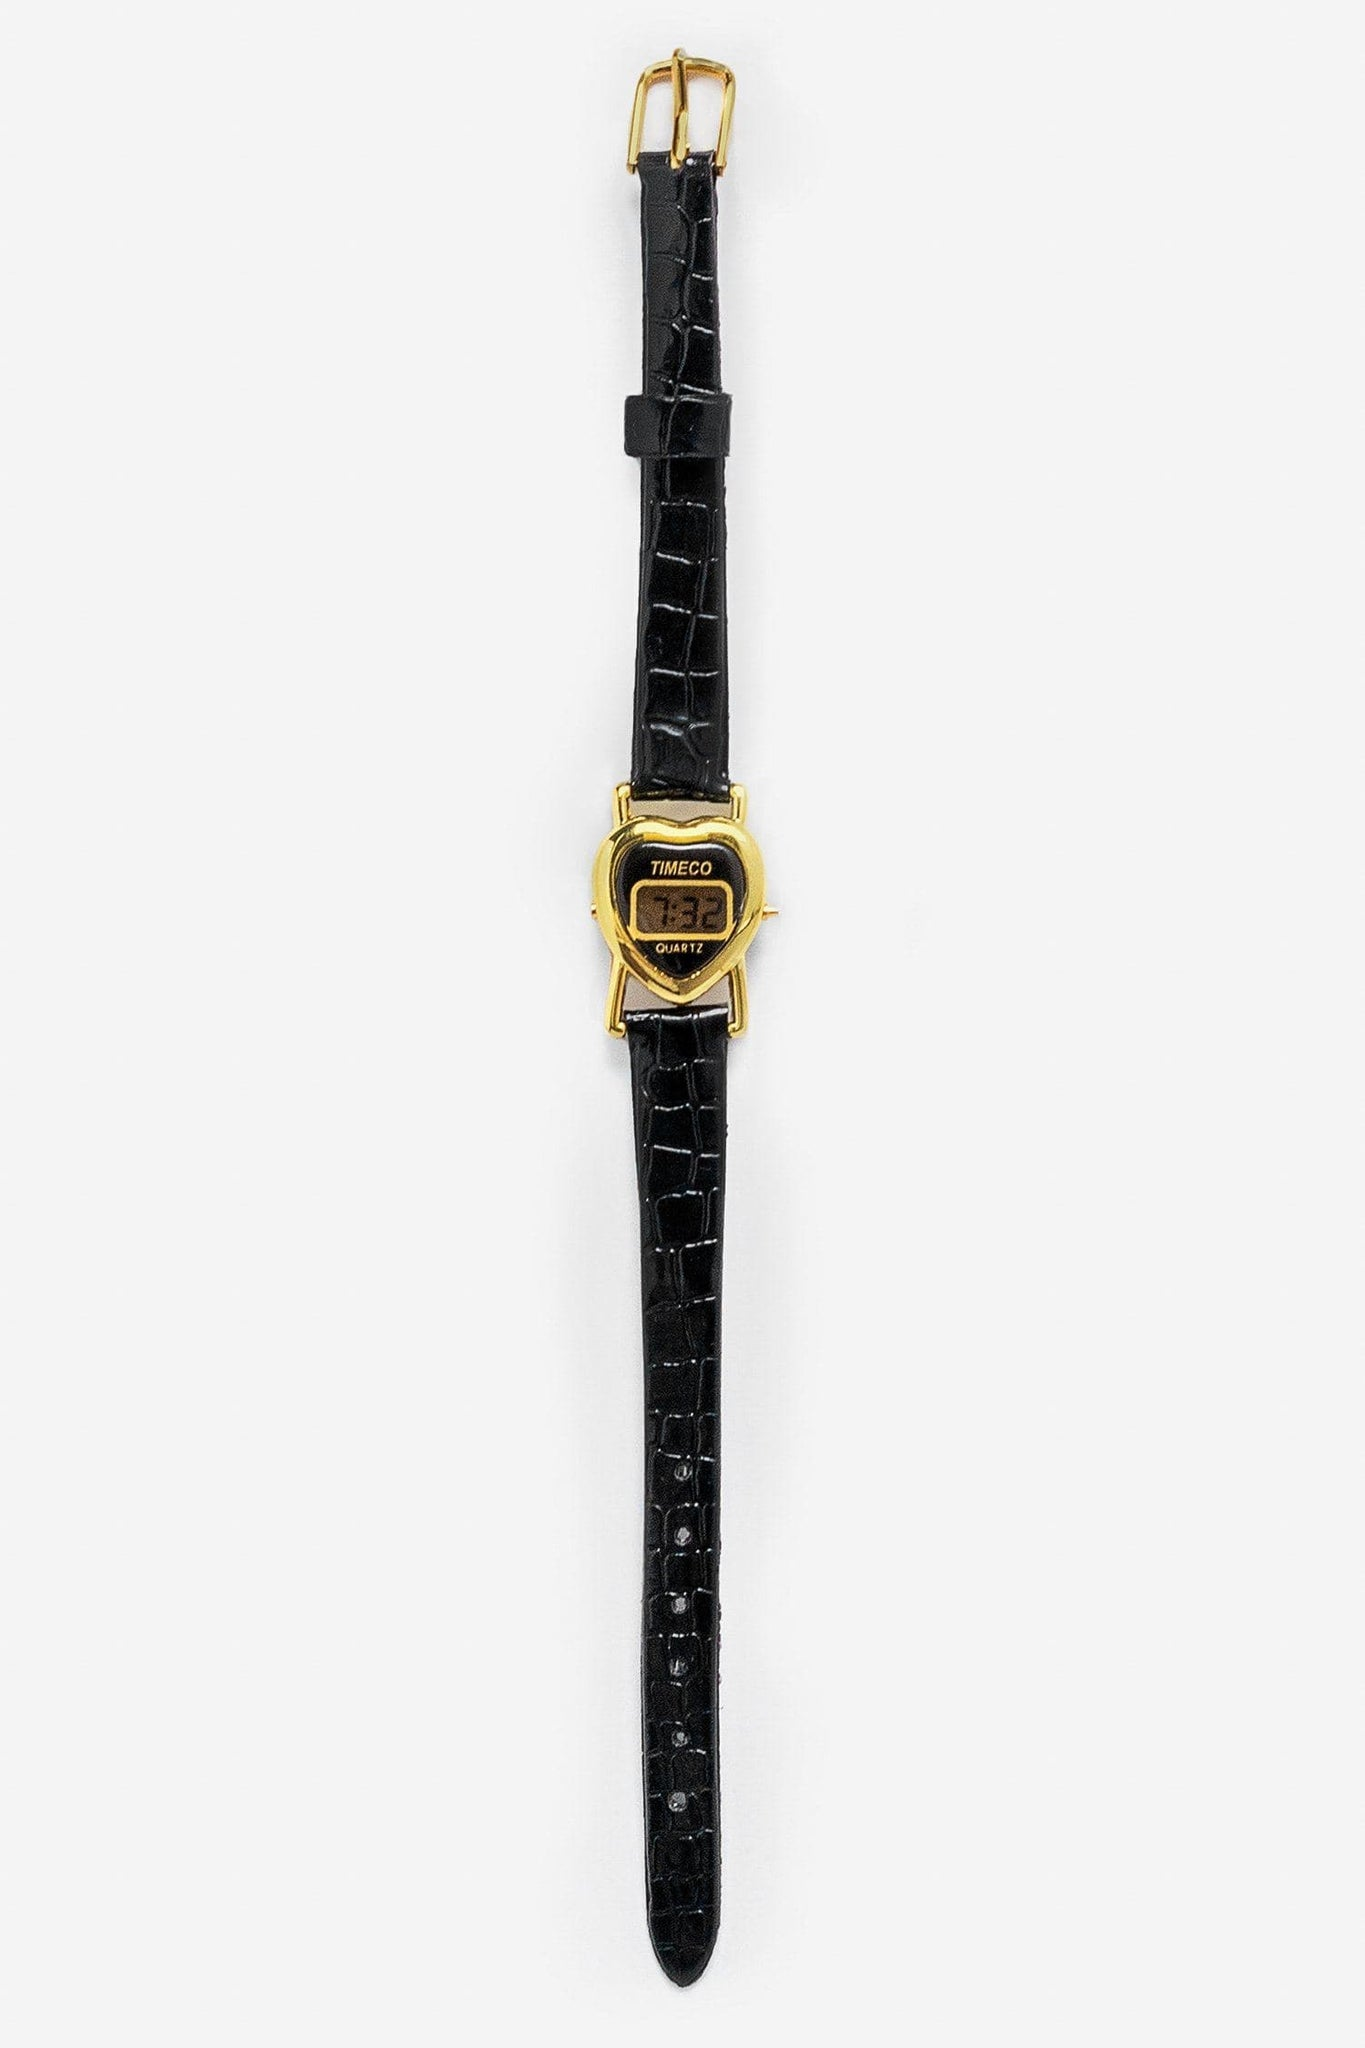 WCHRLGH - Little Heart Women's Watch